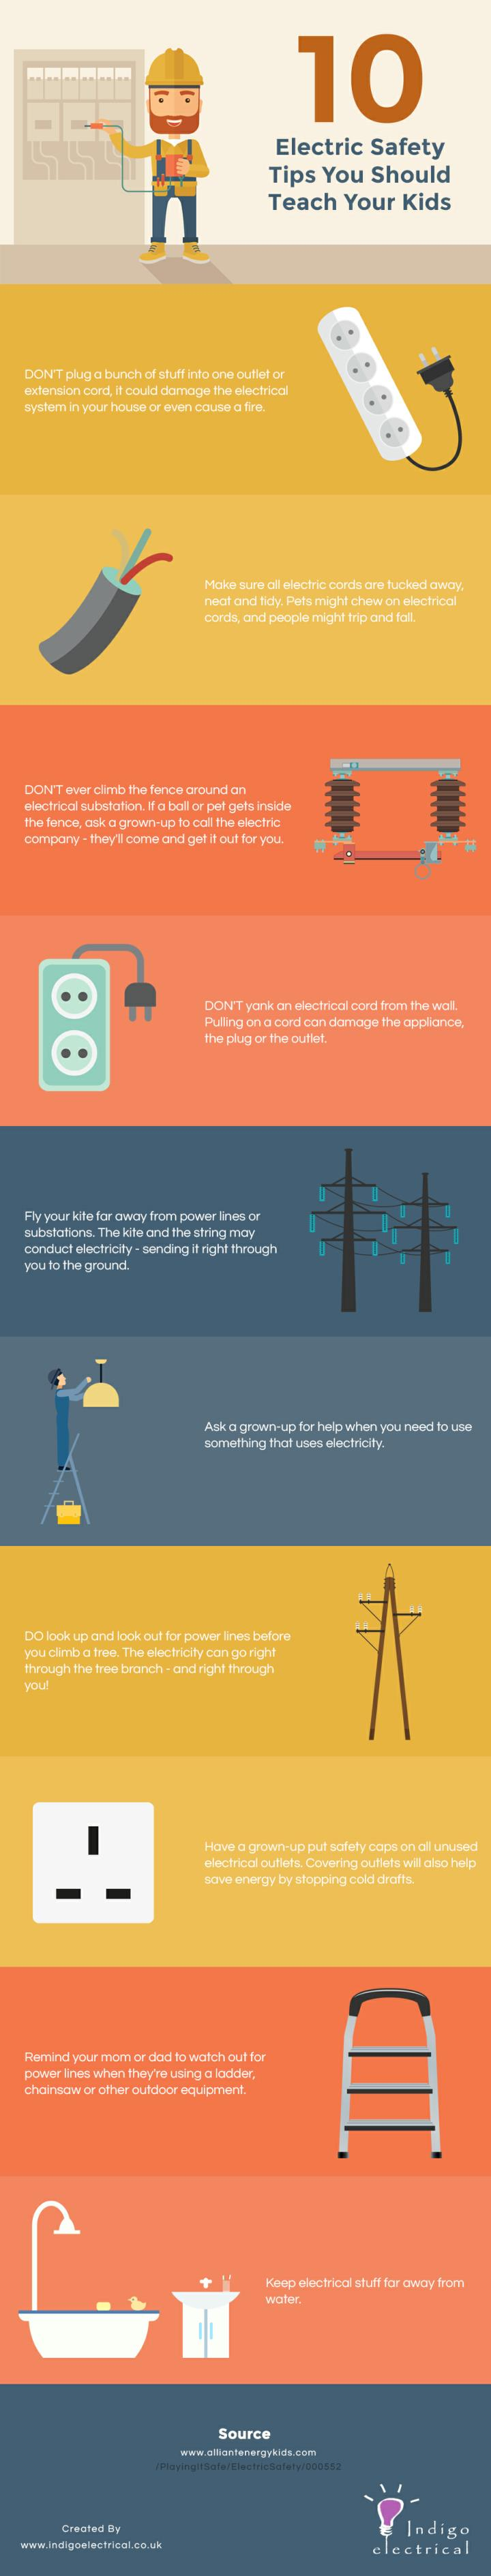 10 electric safety tips you should teach your kids